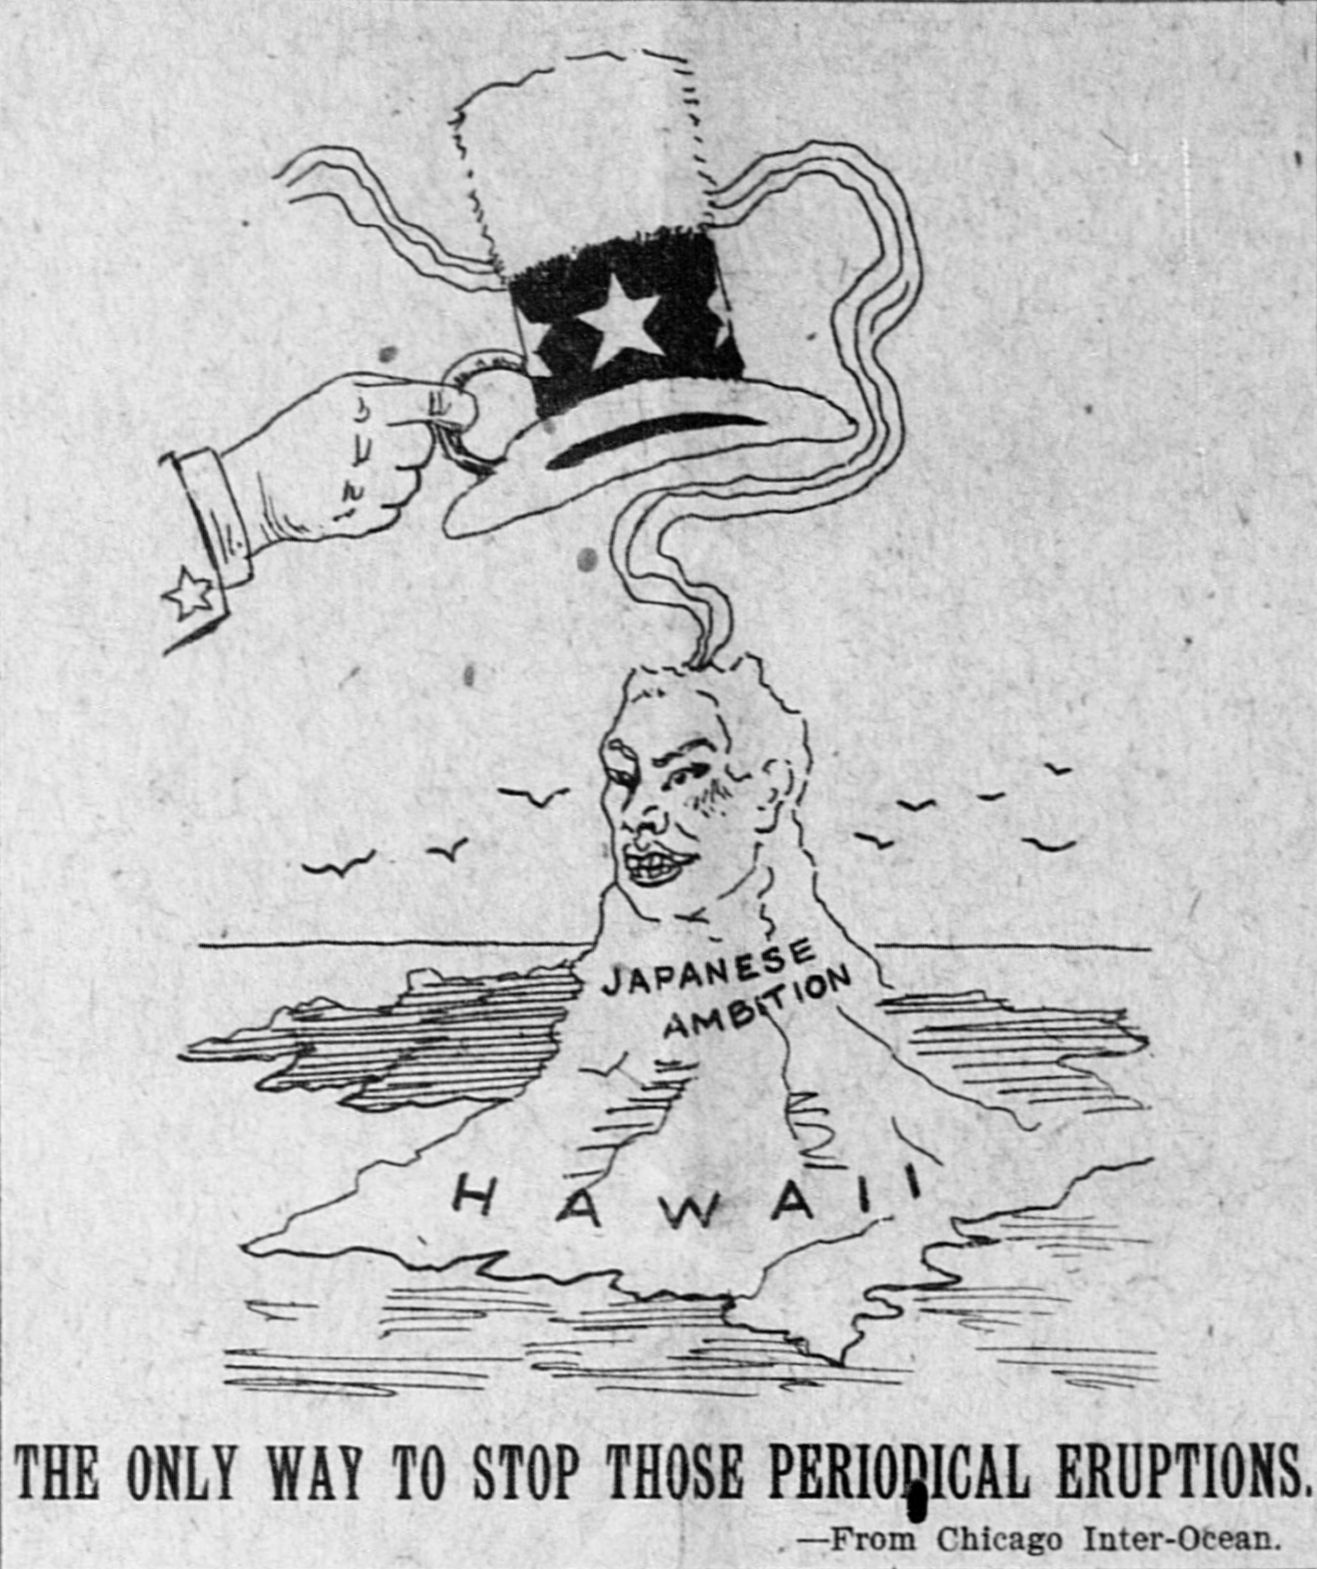 annexation of the philippines American imperialism: annexing the philippines and moral expansion and growth of the united states there was a favorable opinion for the philippines annexation.